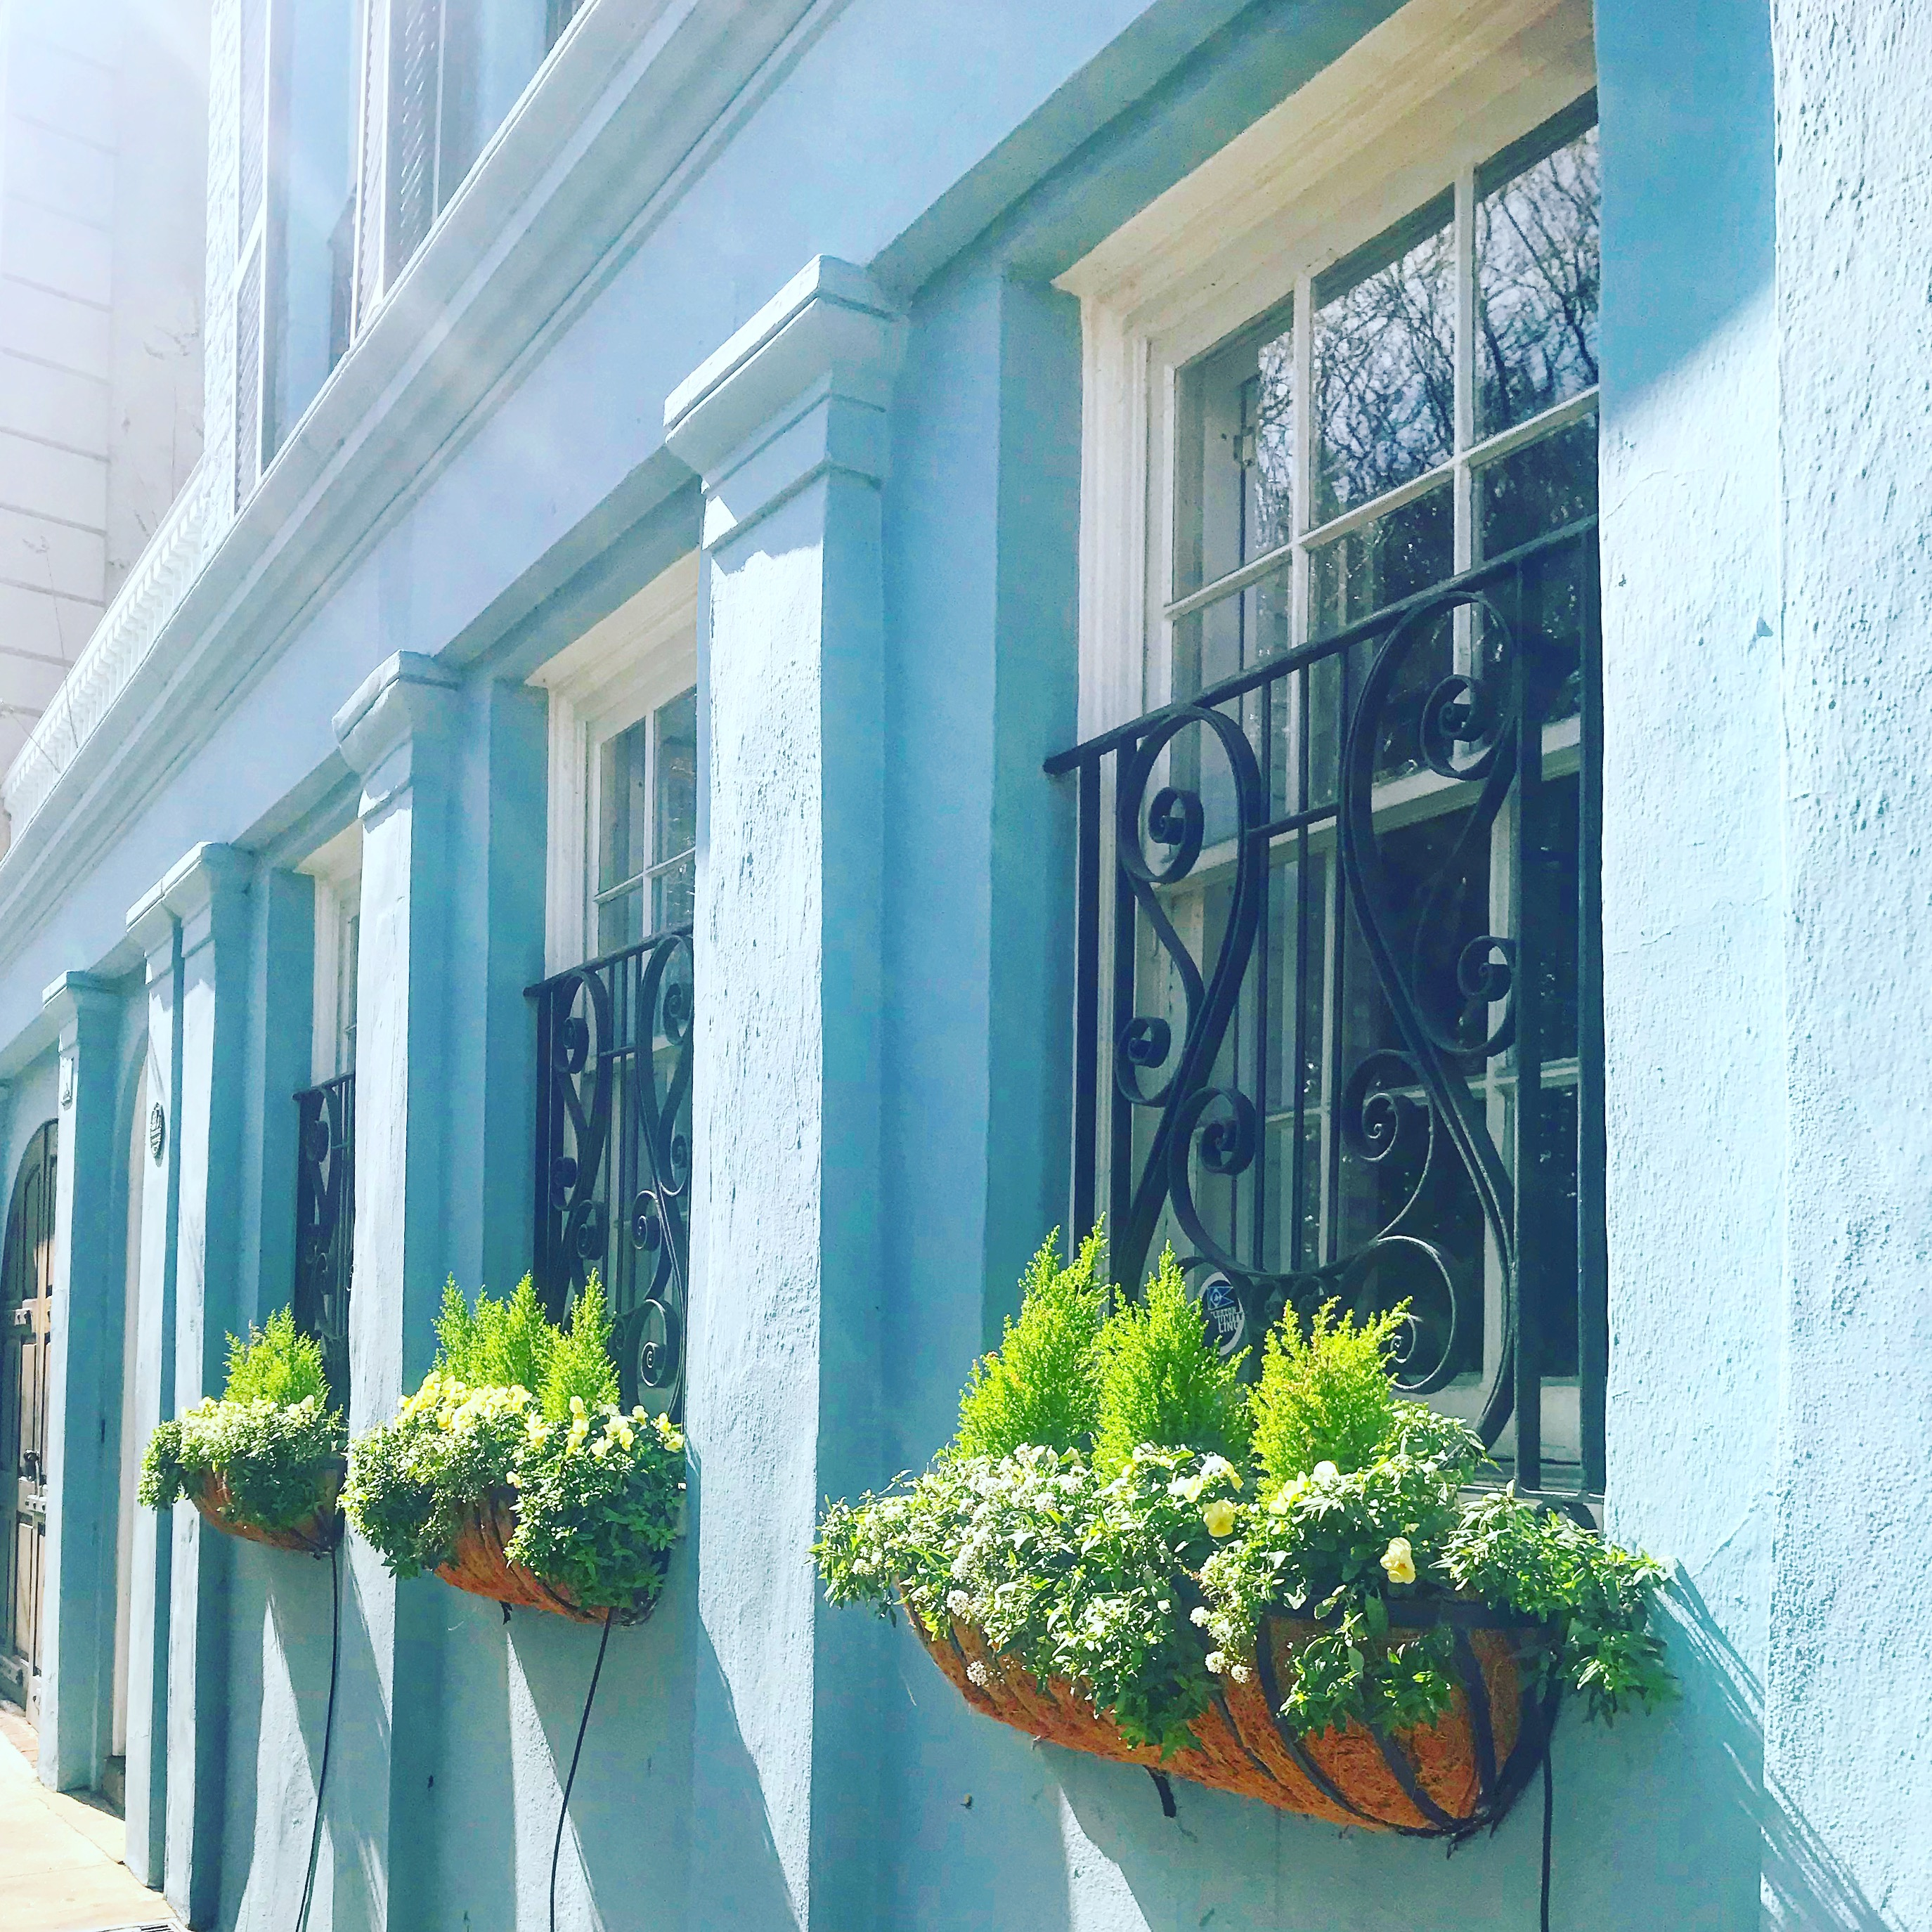 Wanderlusting: Through Charleston